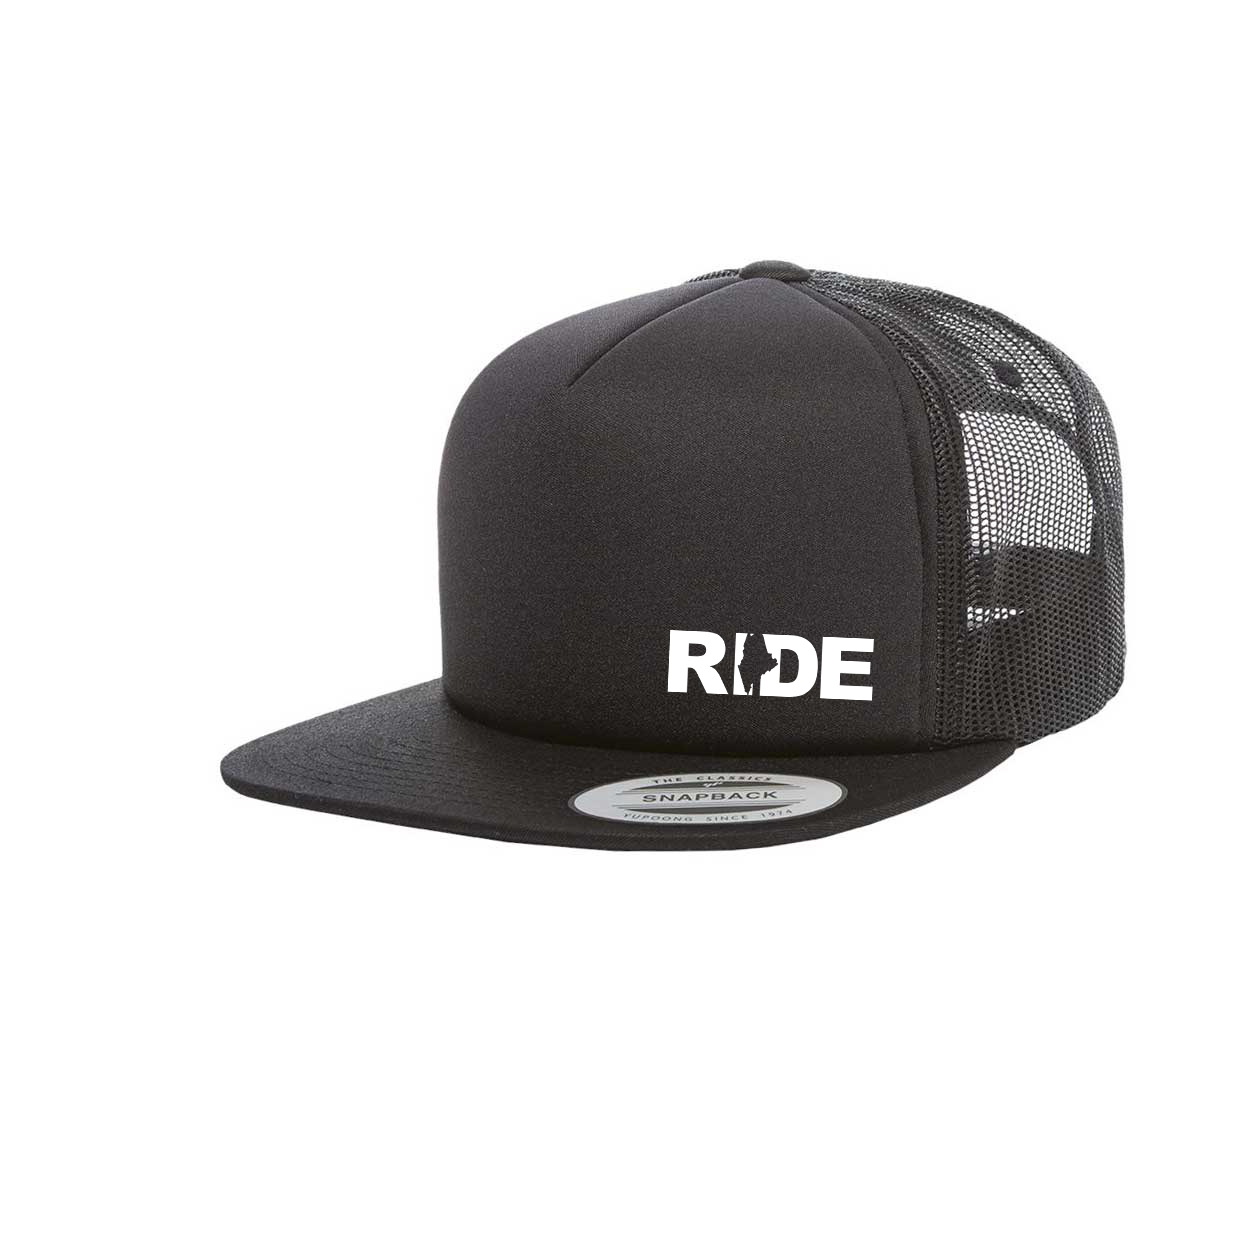 Ride Maine Night Out Premium Foam Flat Brim Snapback Hat Black (White Logo)